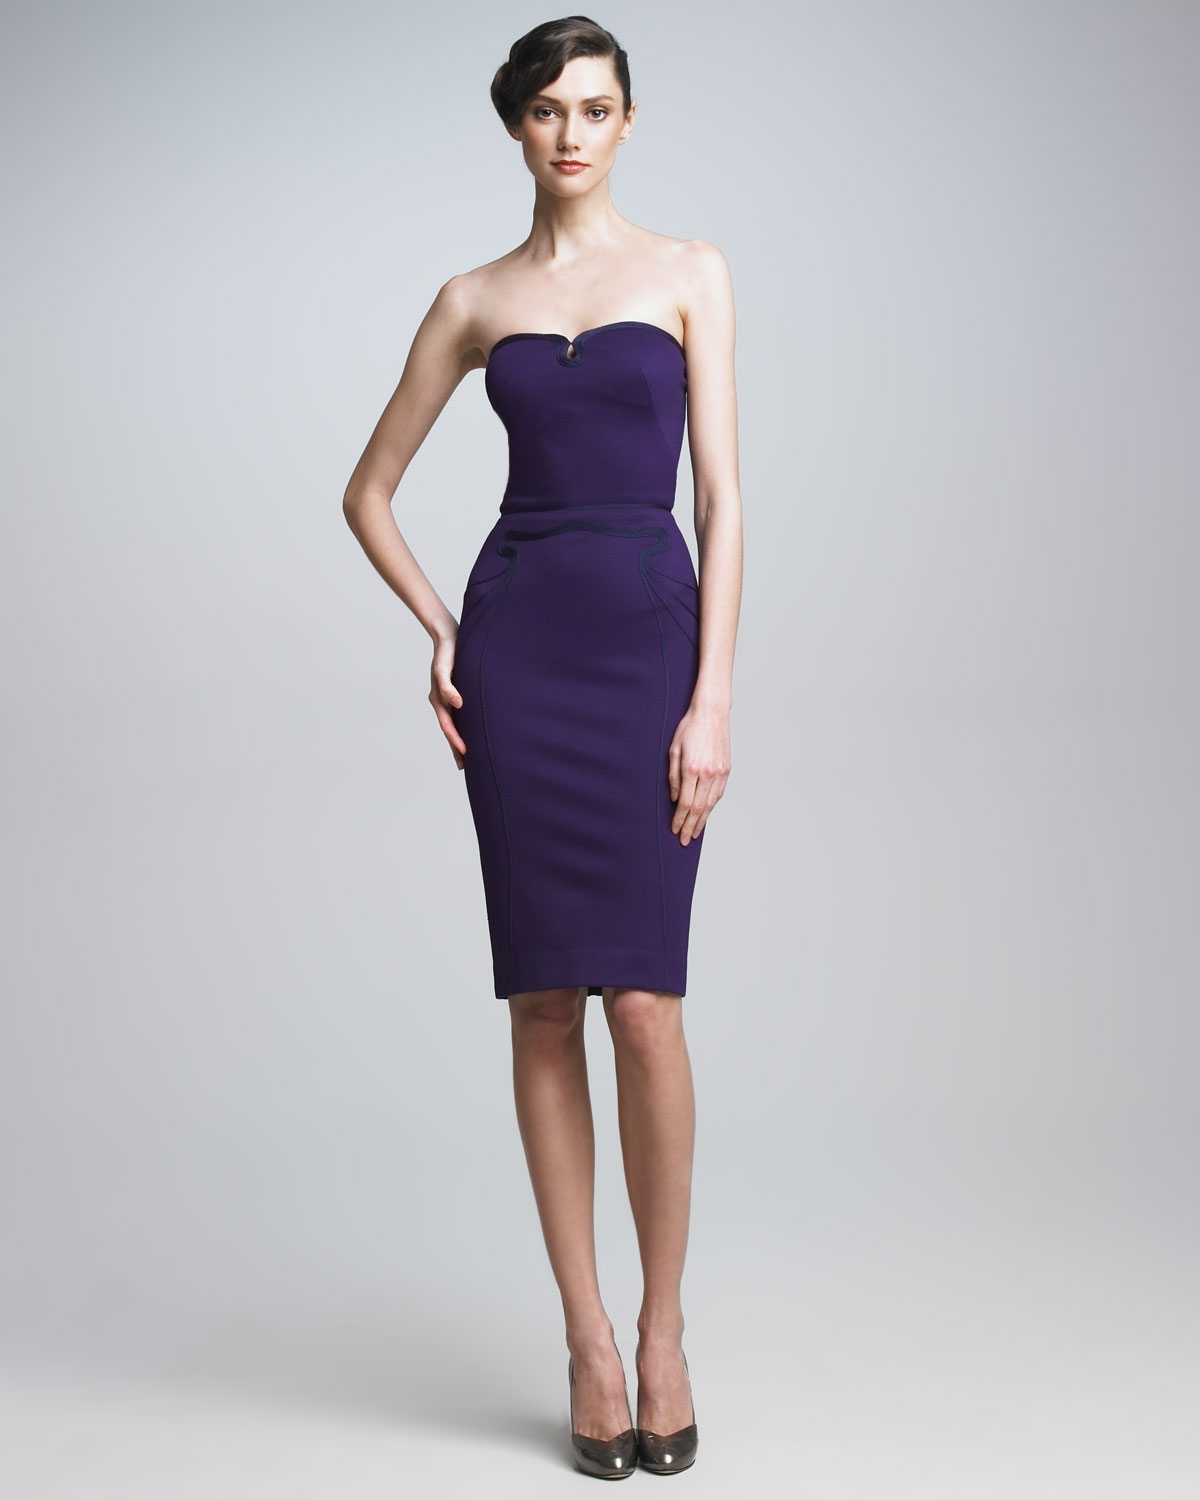 Zac posen Strapless Sheath Dress in Purple | Lyst